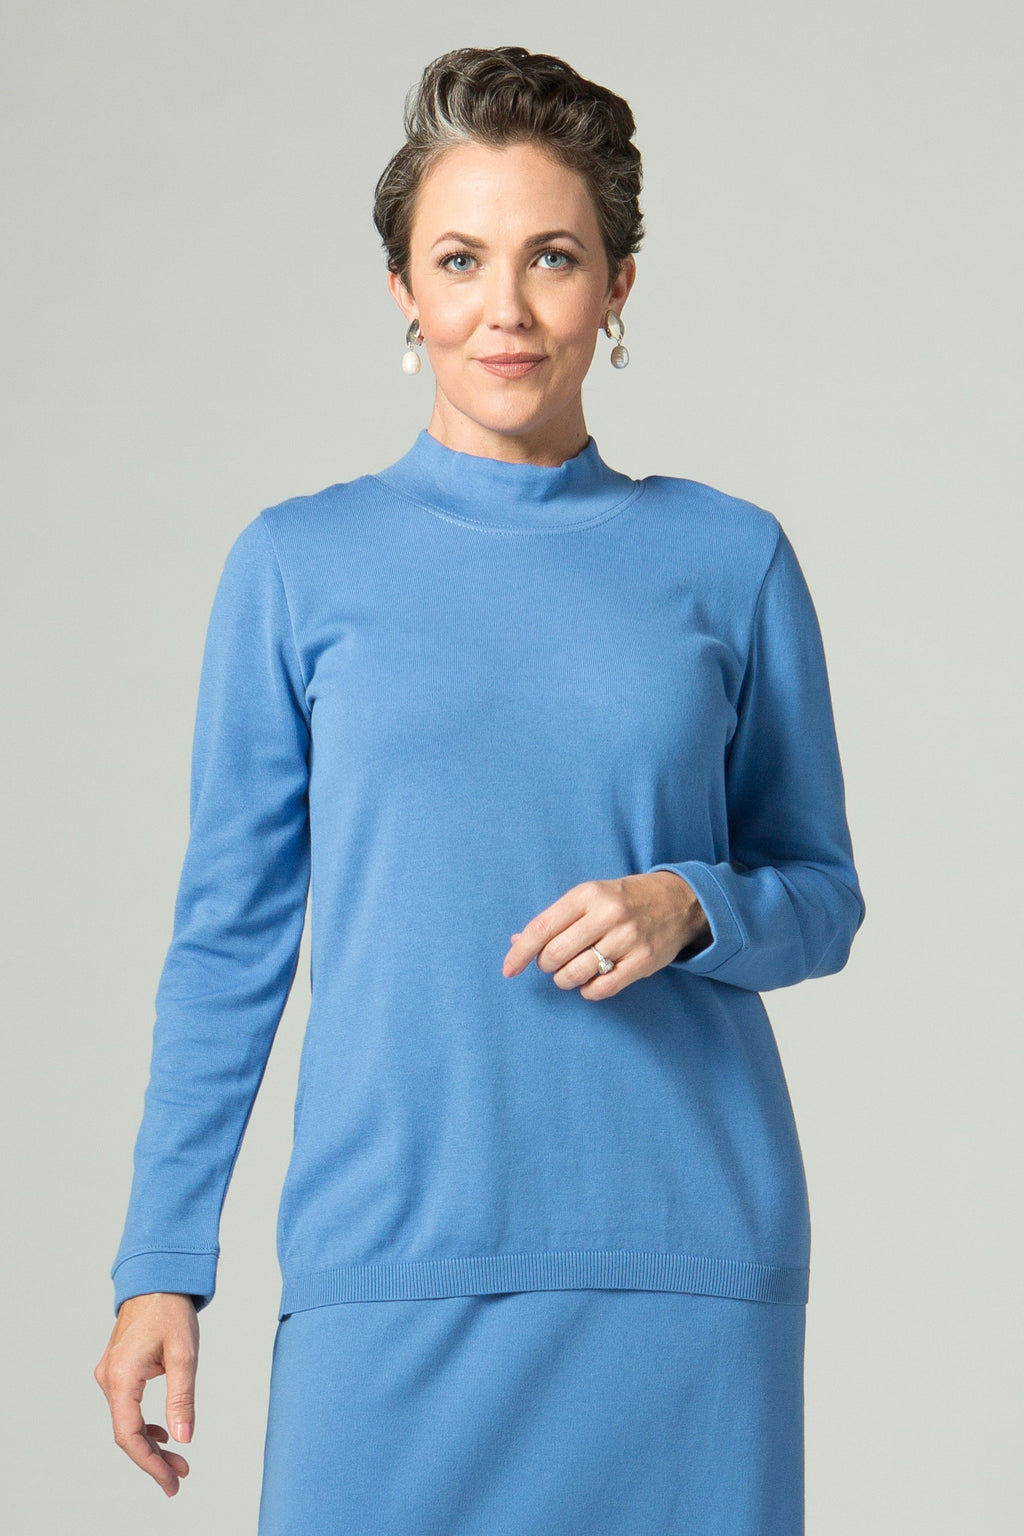 Long Sleeve Fitted Mock Neck T - New Orleans Knitwear